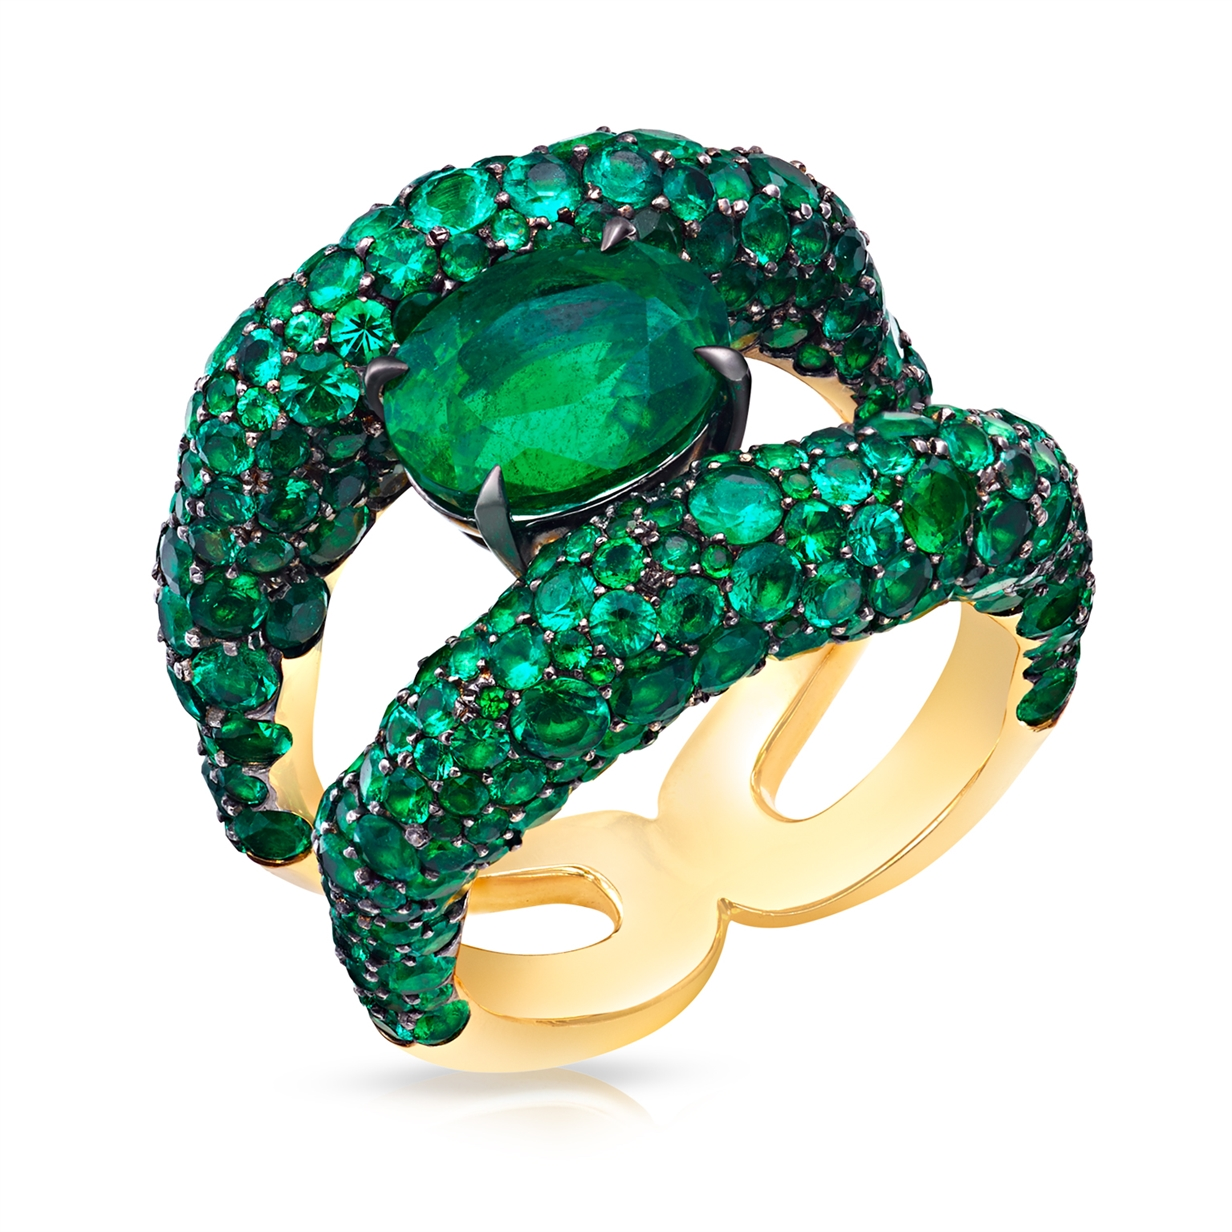 Charmeuse Yellow Gold Emerald Ring | Fabergé